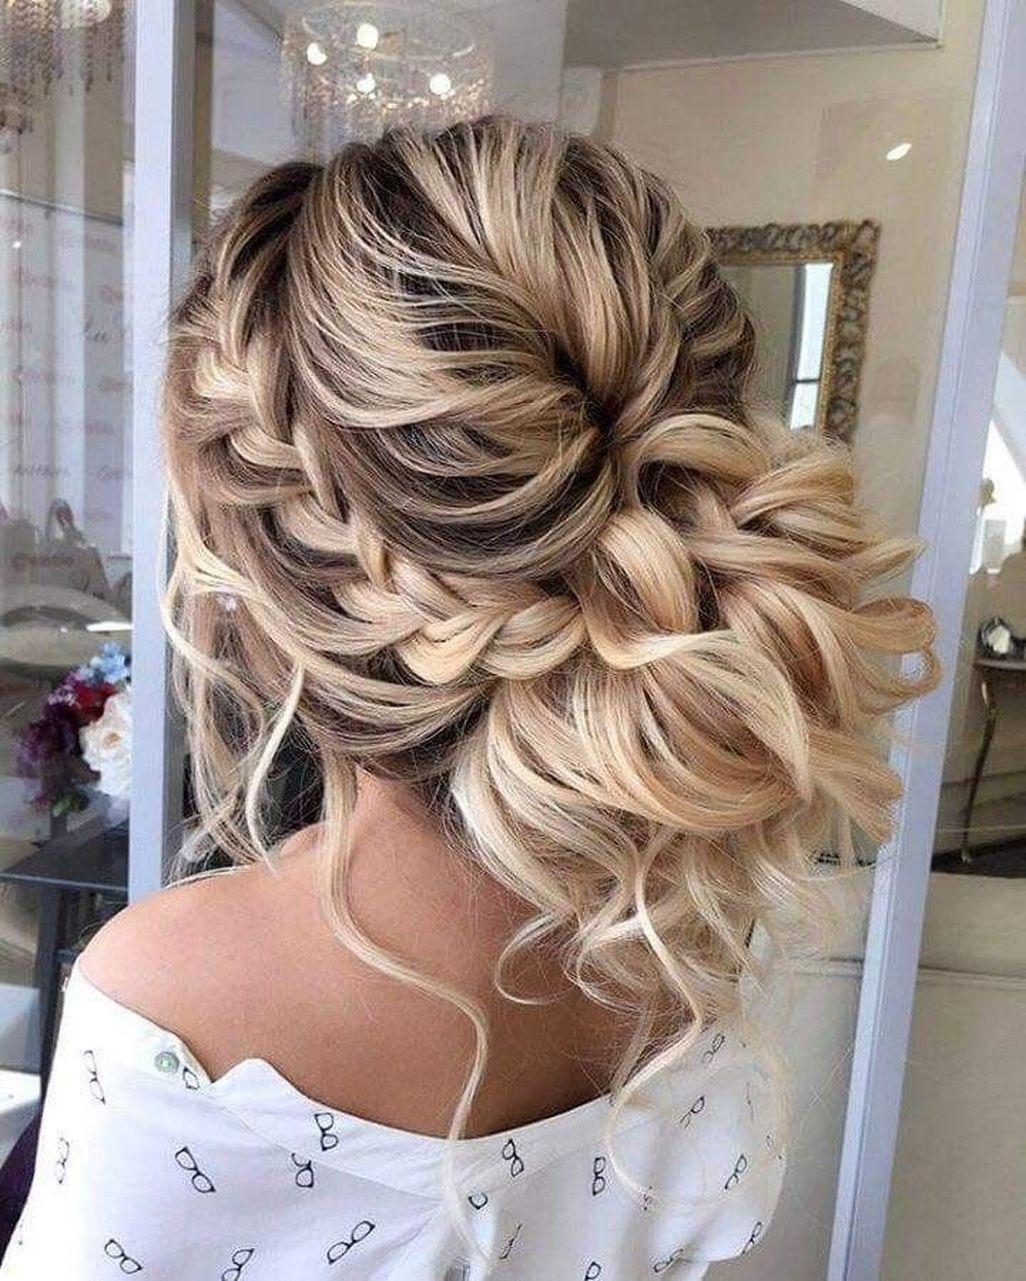 Pin By Mikaela Ferrara On Hair Pinterest Frisur Hochgesteckt